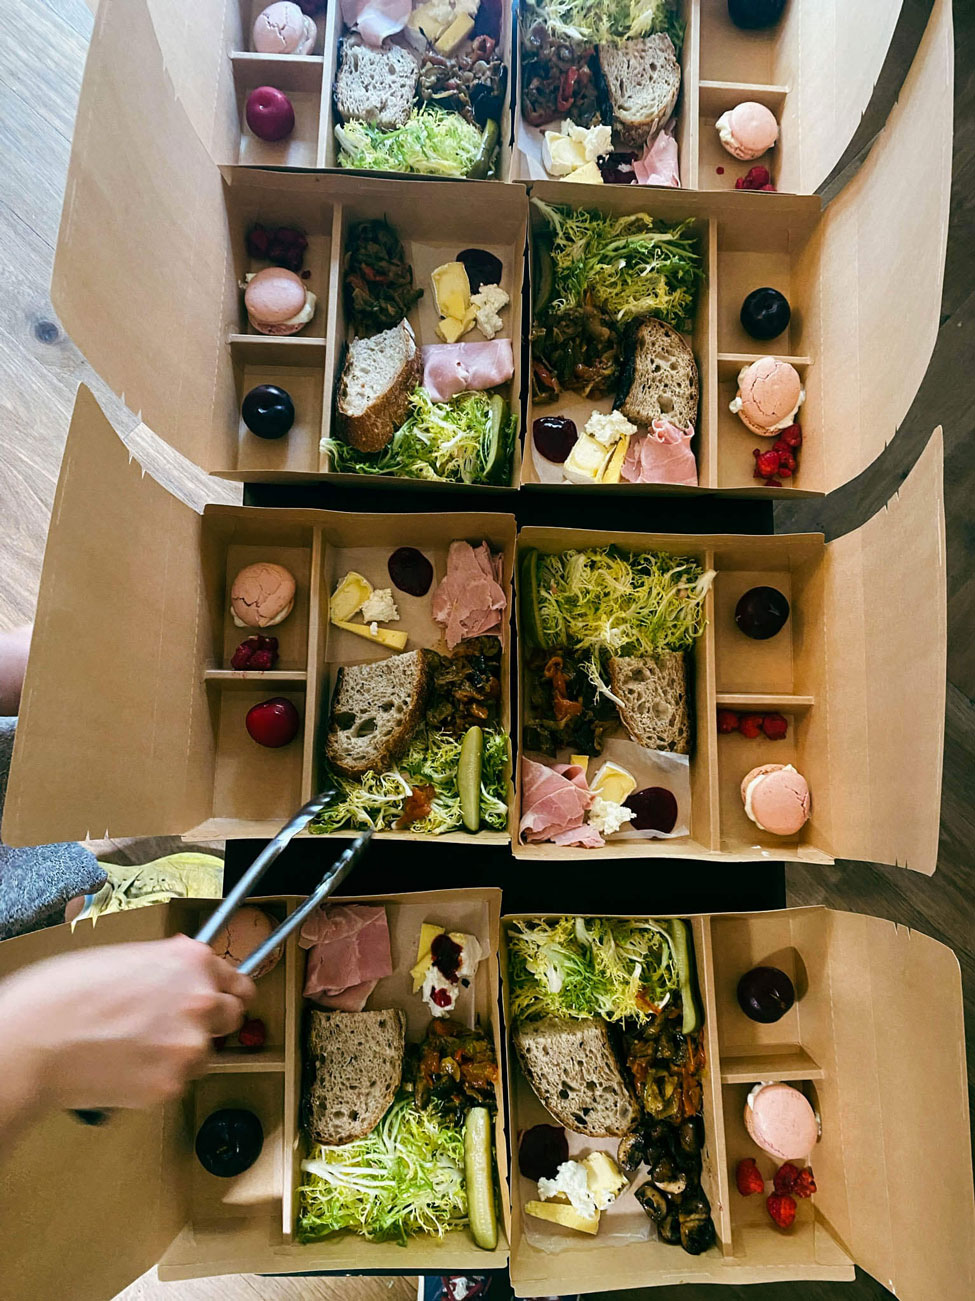 A person putting together picnic boxes.